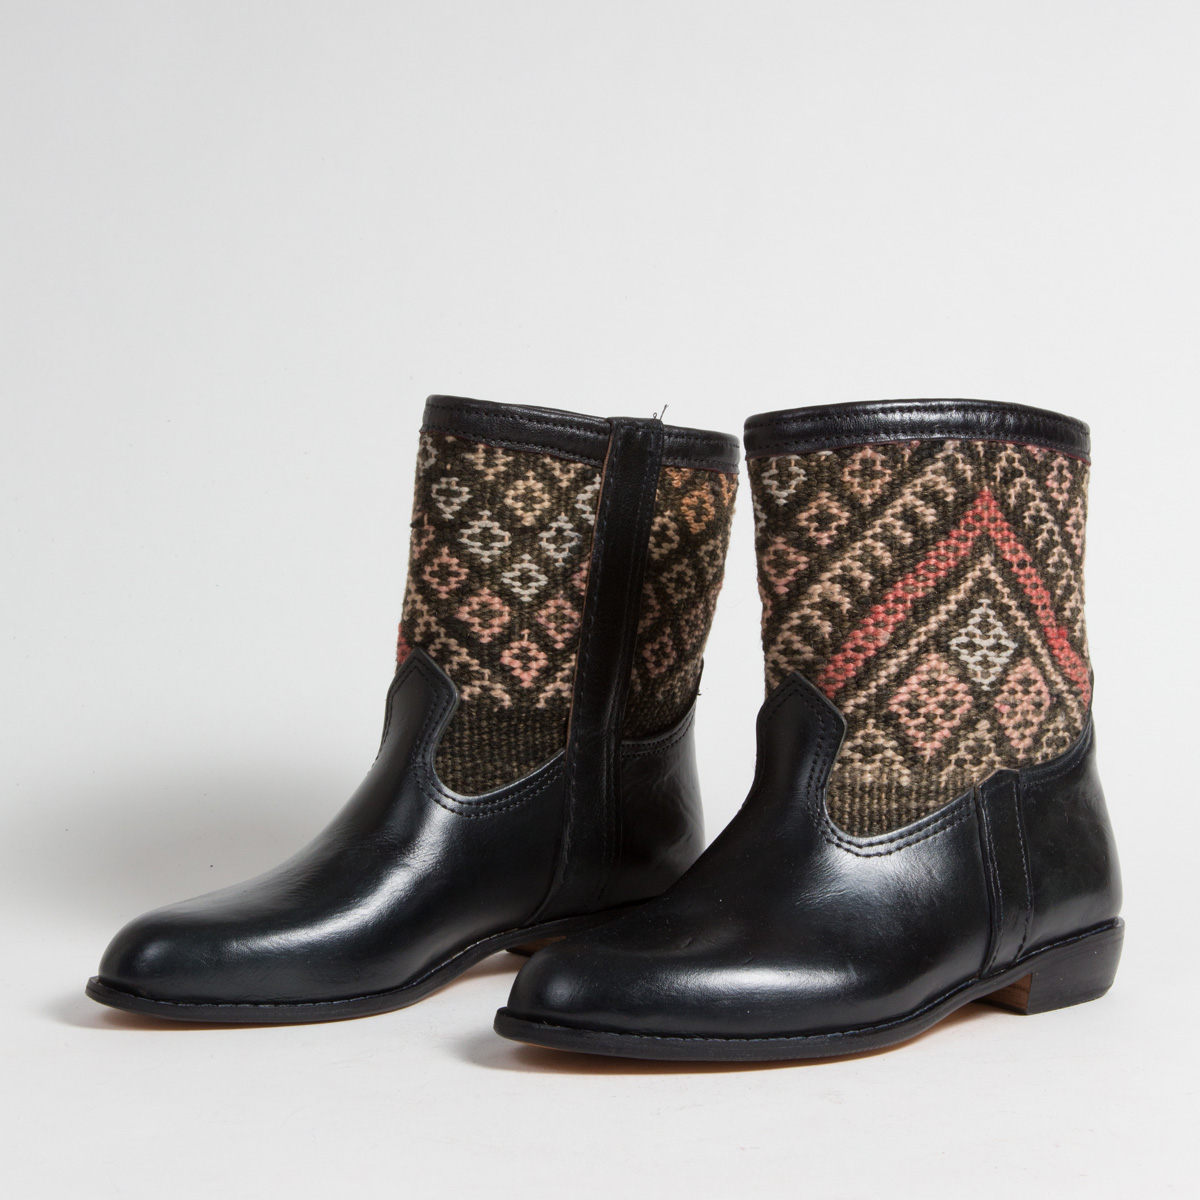 Bottines Kilim - images/kilim/bottines/rpn24-01-40-kilim-artisanat-cuir-ethnique-marocaine-bottine-femme-s.jpg